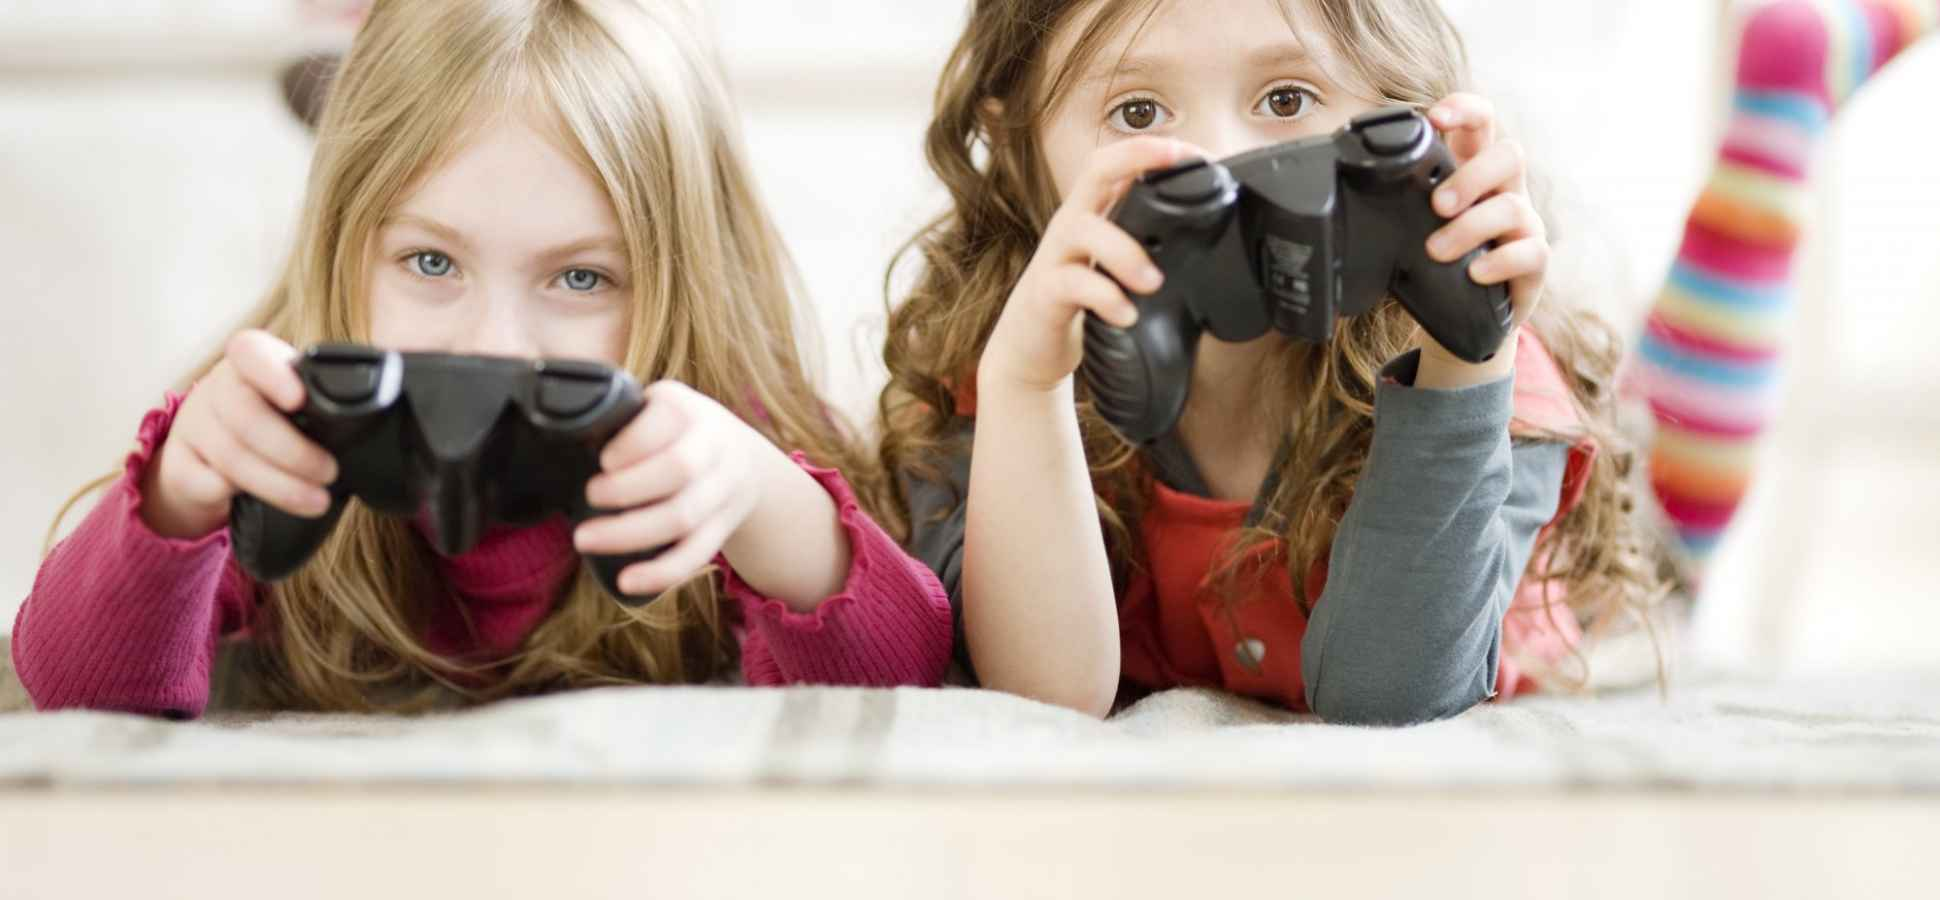 Want Smart, Socially Adept Kids? Let Them Play Video Games